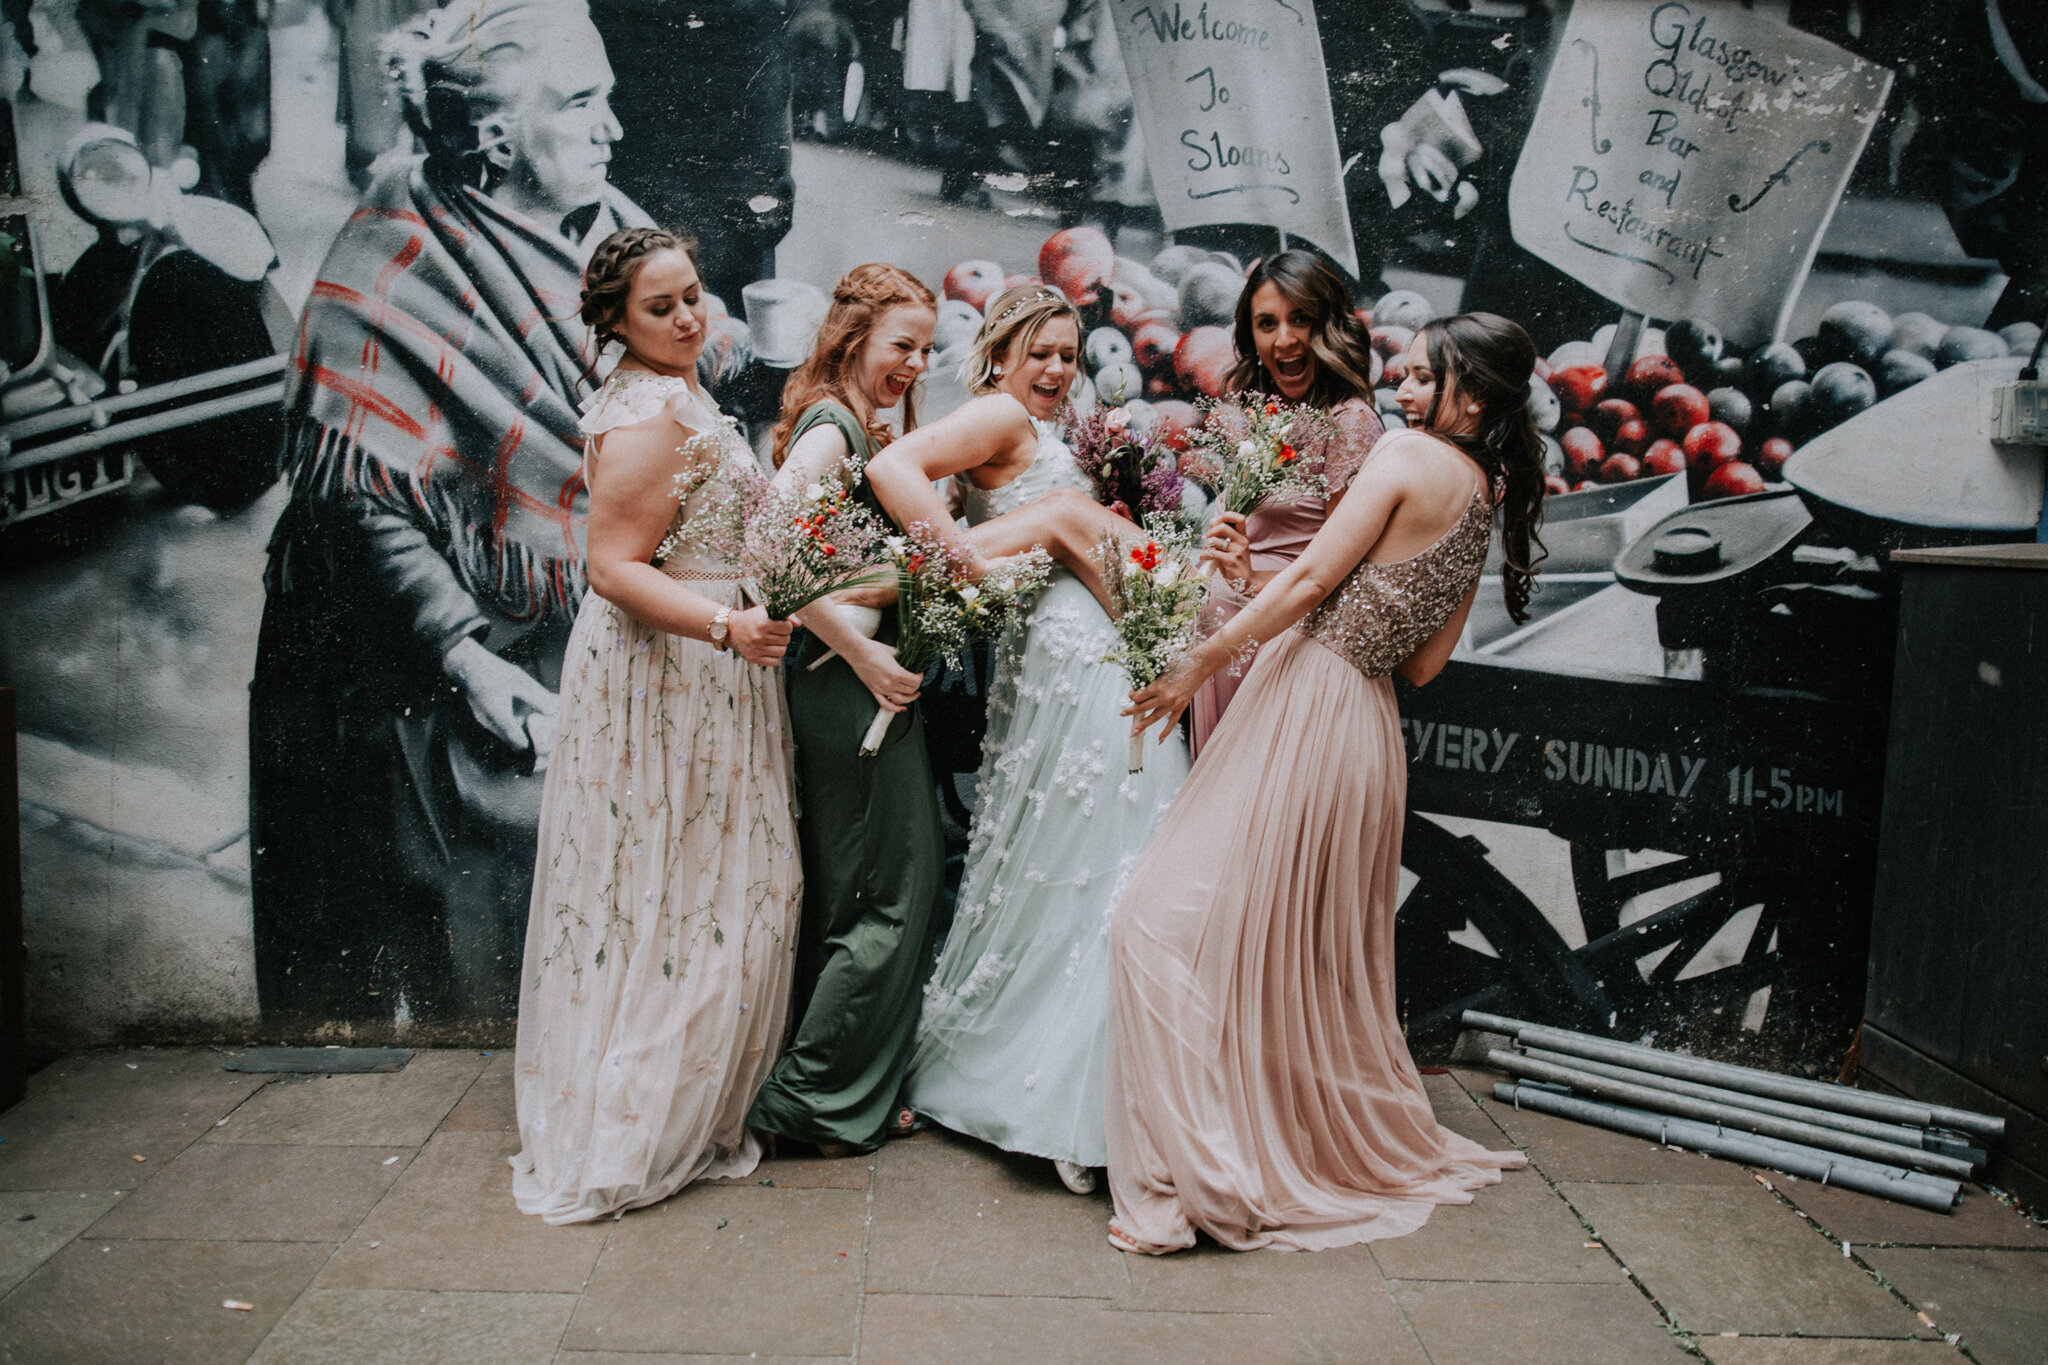 A crazy bridal party on their bridal formals photos at Sloan's